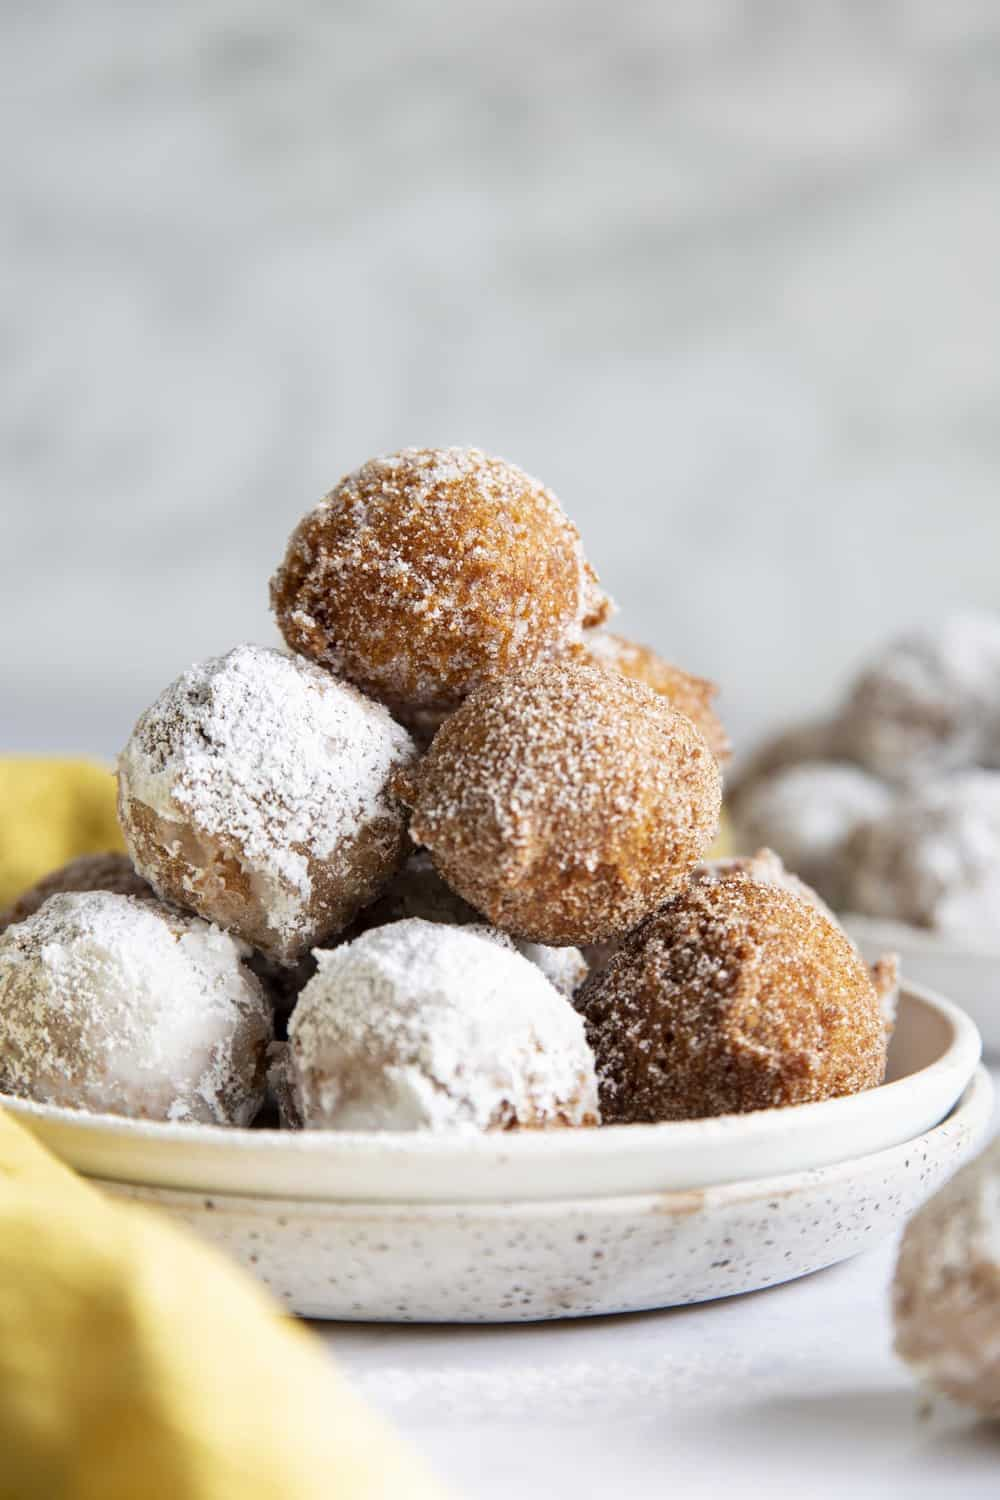 A plate full of powdered sugared and cinnamon sugared donut holes.